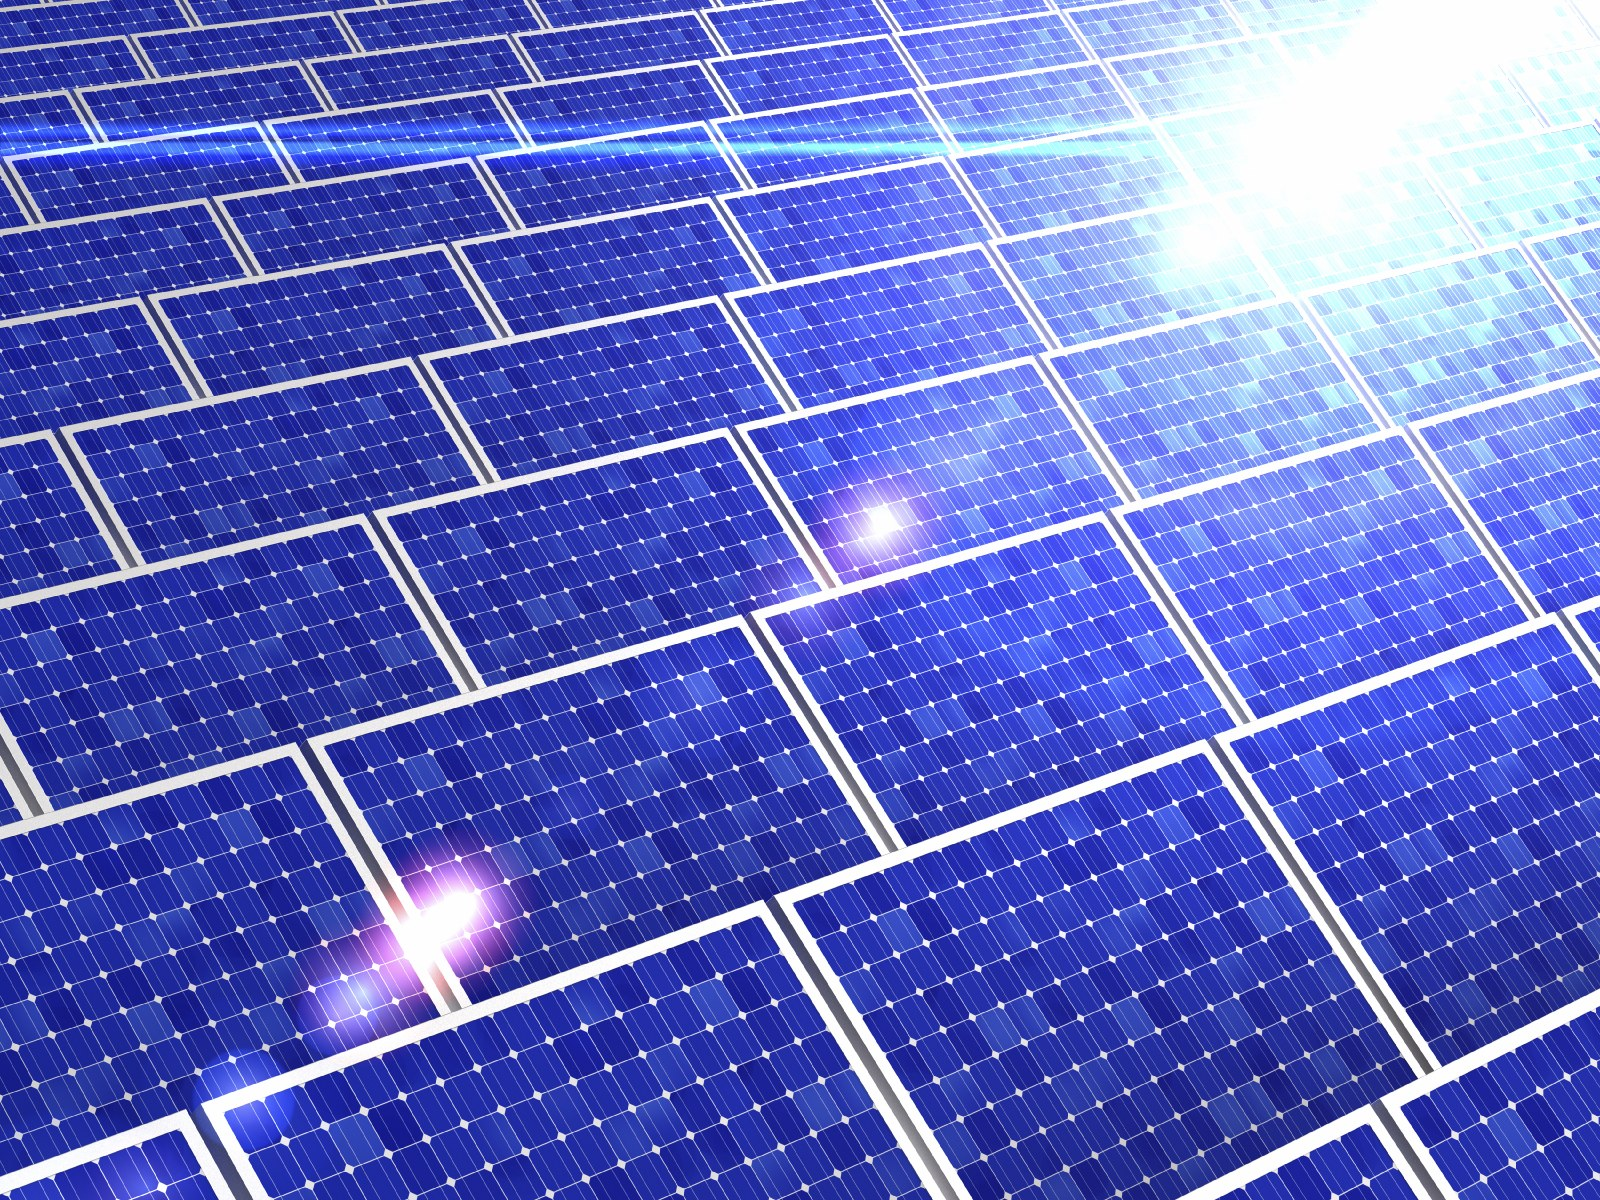 solar panel desktop wallpaper - photo #19